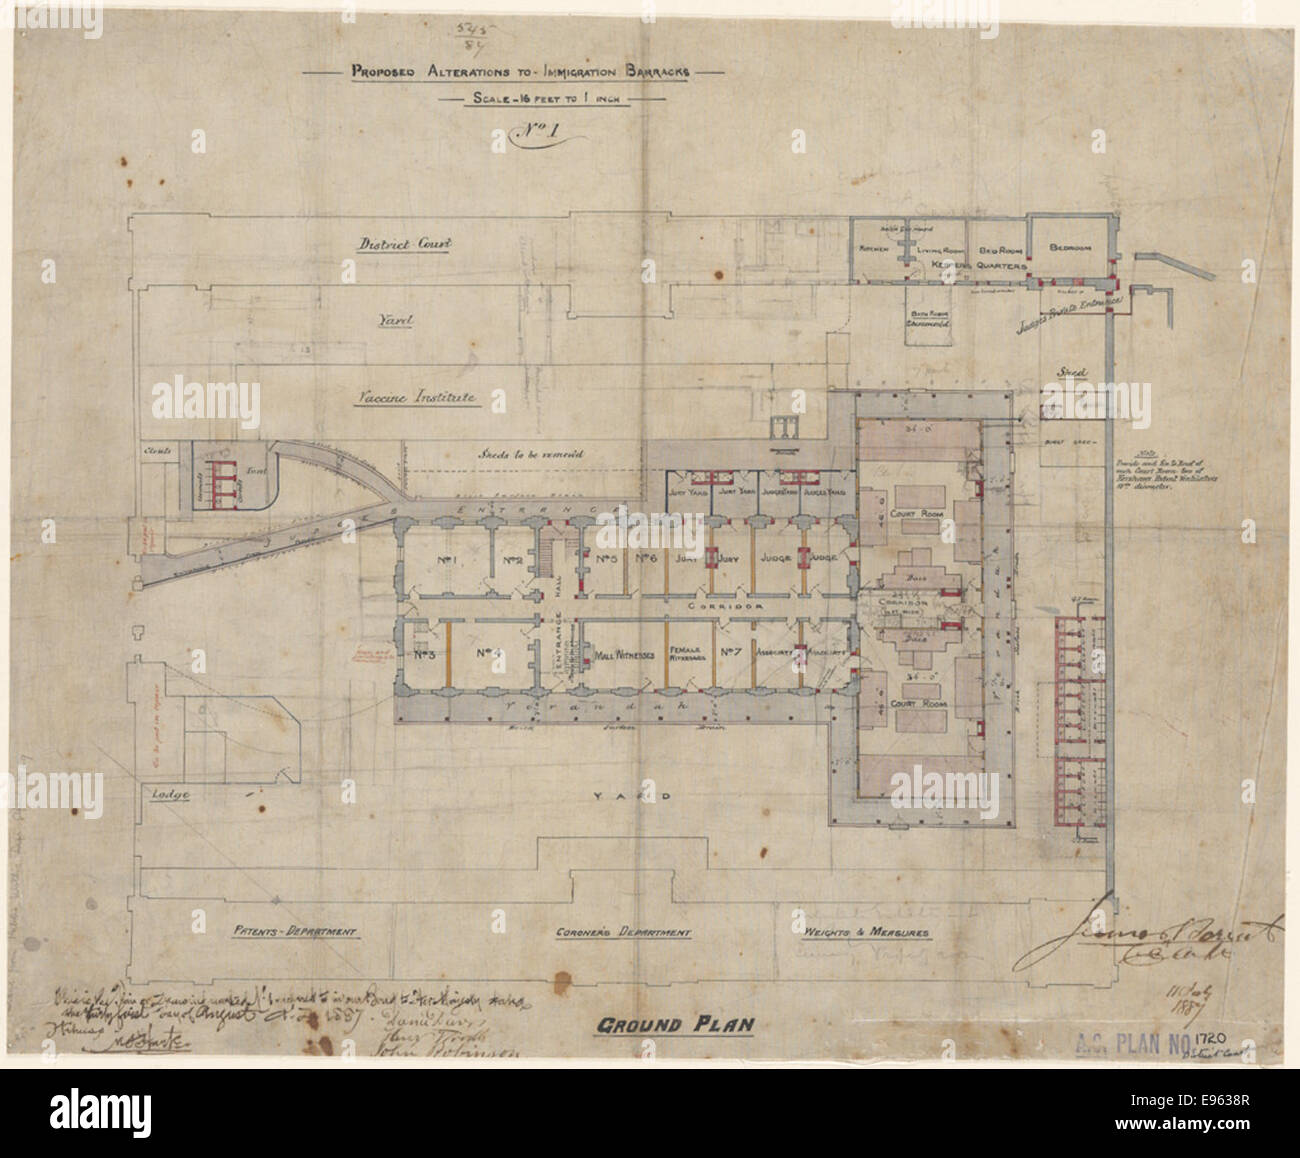 Sydney Proposed alterations to Immigration Barracks. Ground plan, No. [Number] 1 - Stock Image